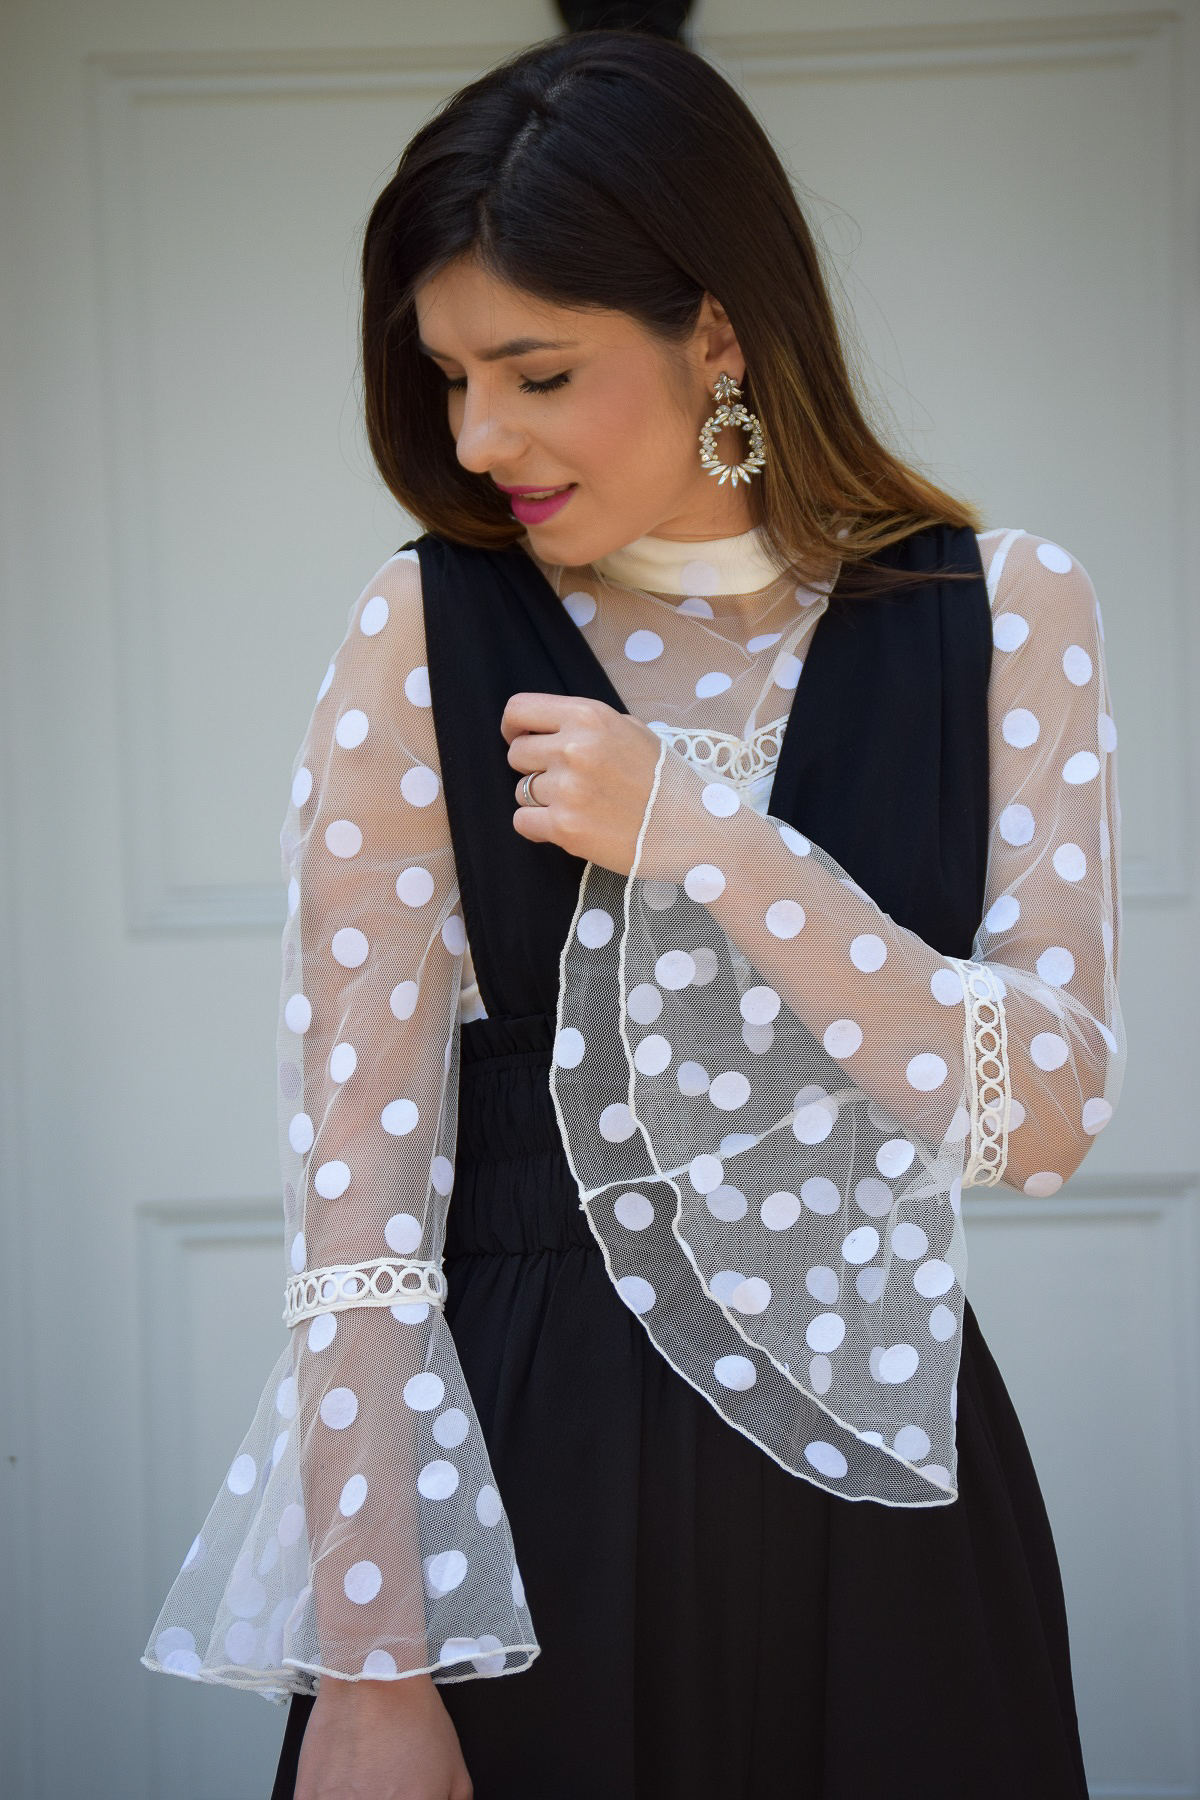 White Polka Dot Frill Top